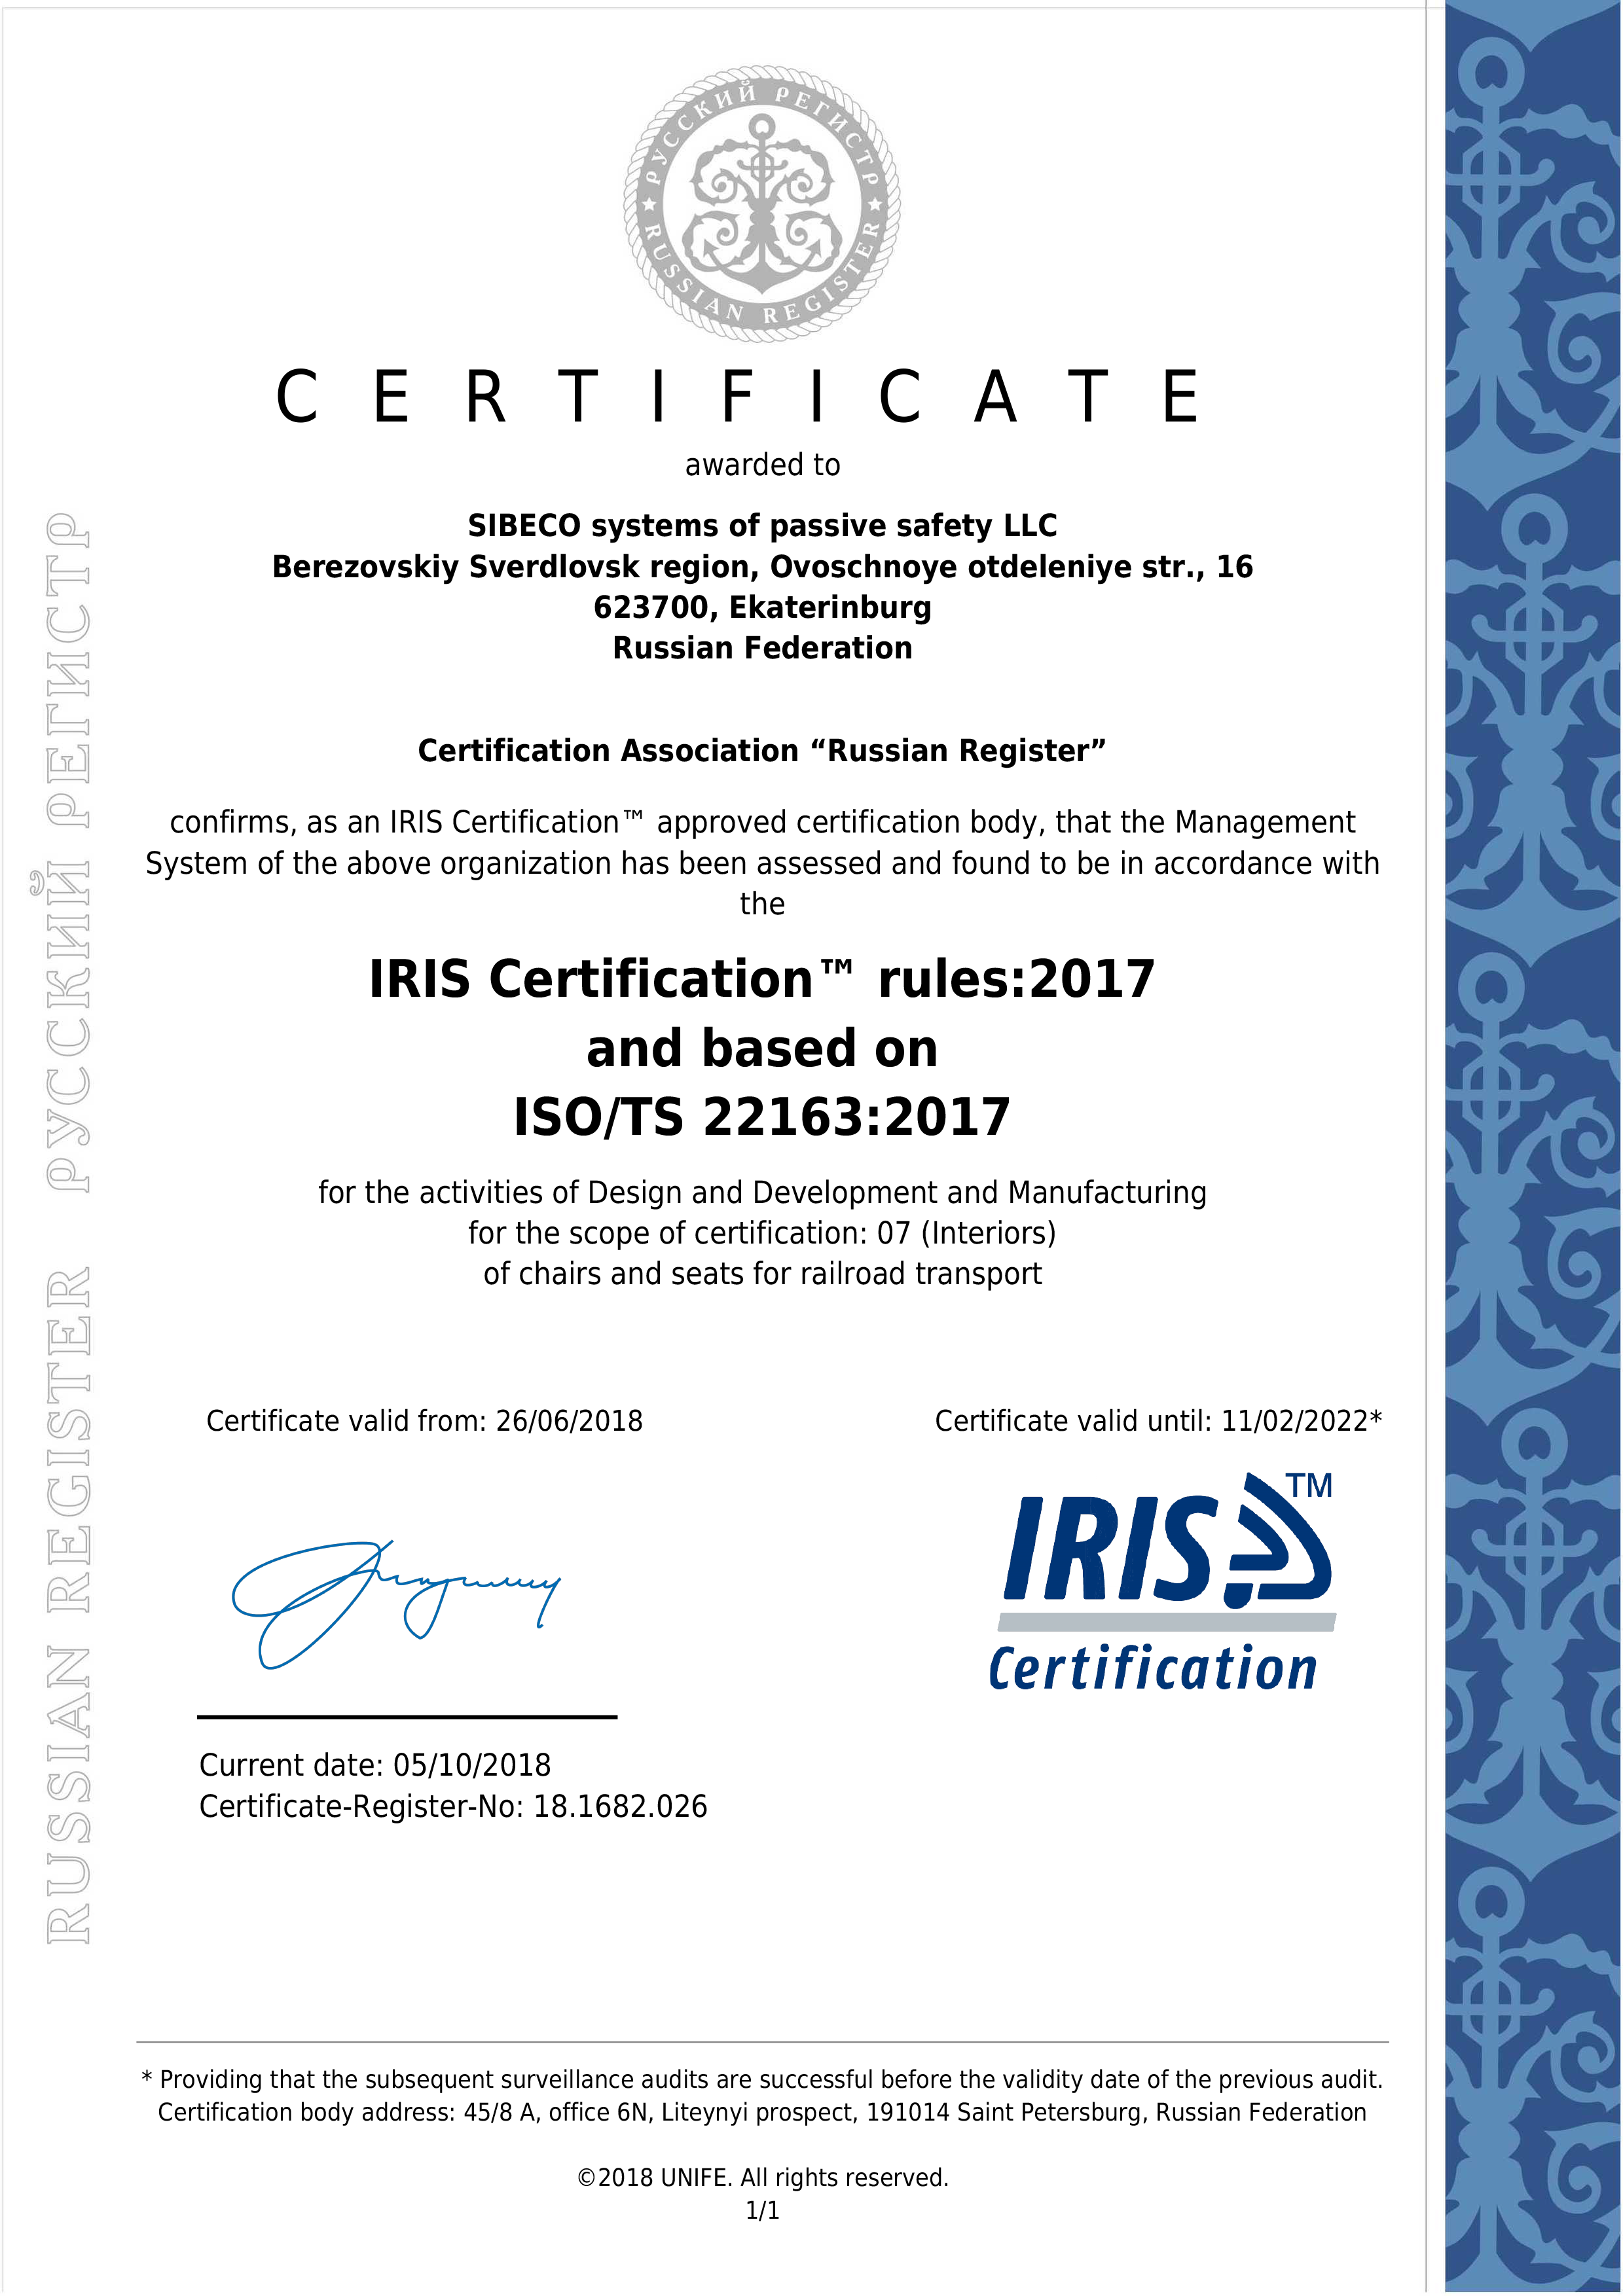 IRIS Certification™ rules:2017 and based on ISO/TS 22163:2017